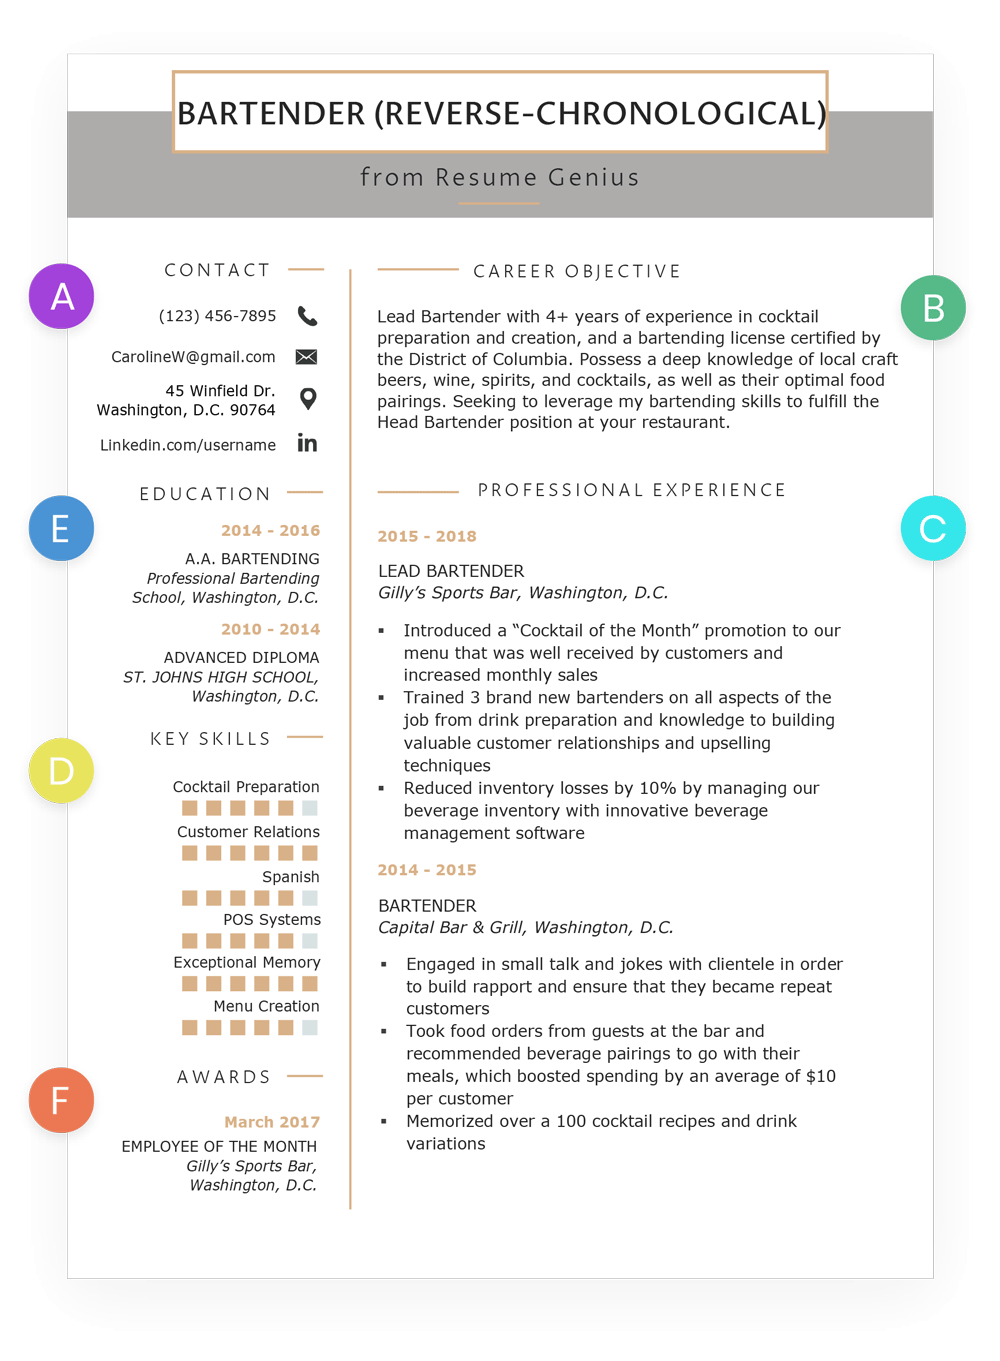 Resume Layout Examples Chronological Resume Samples Writing Guide Rg